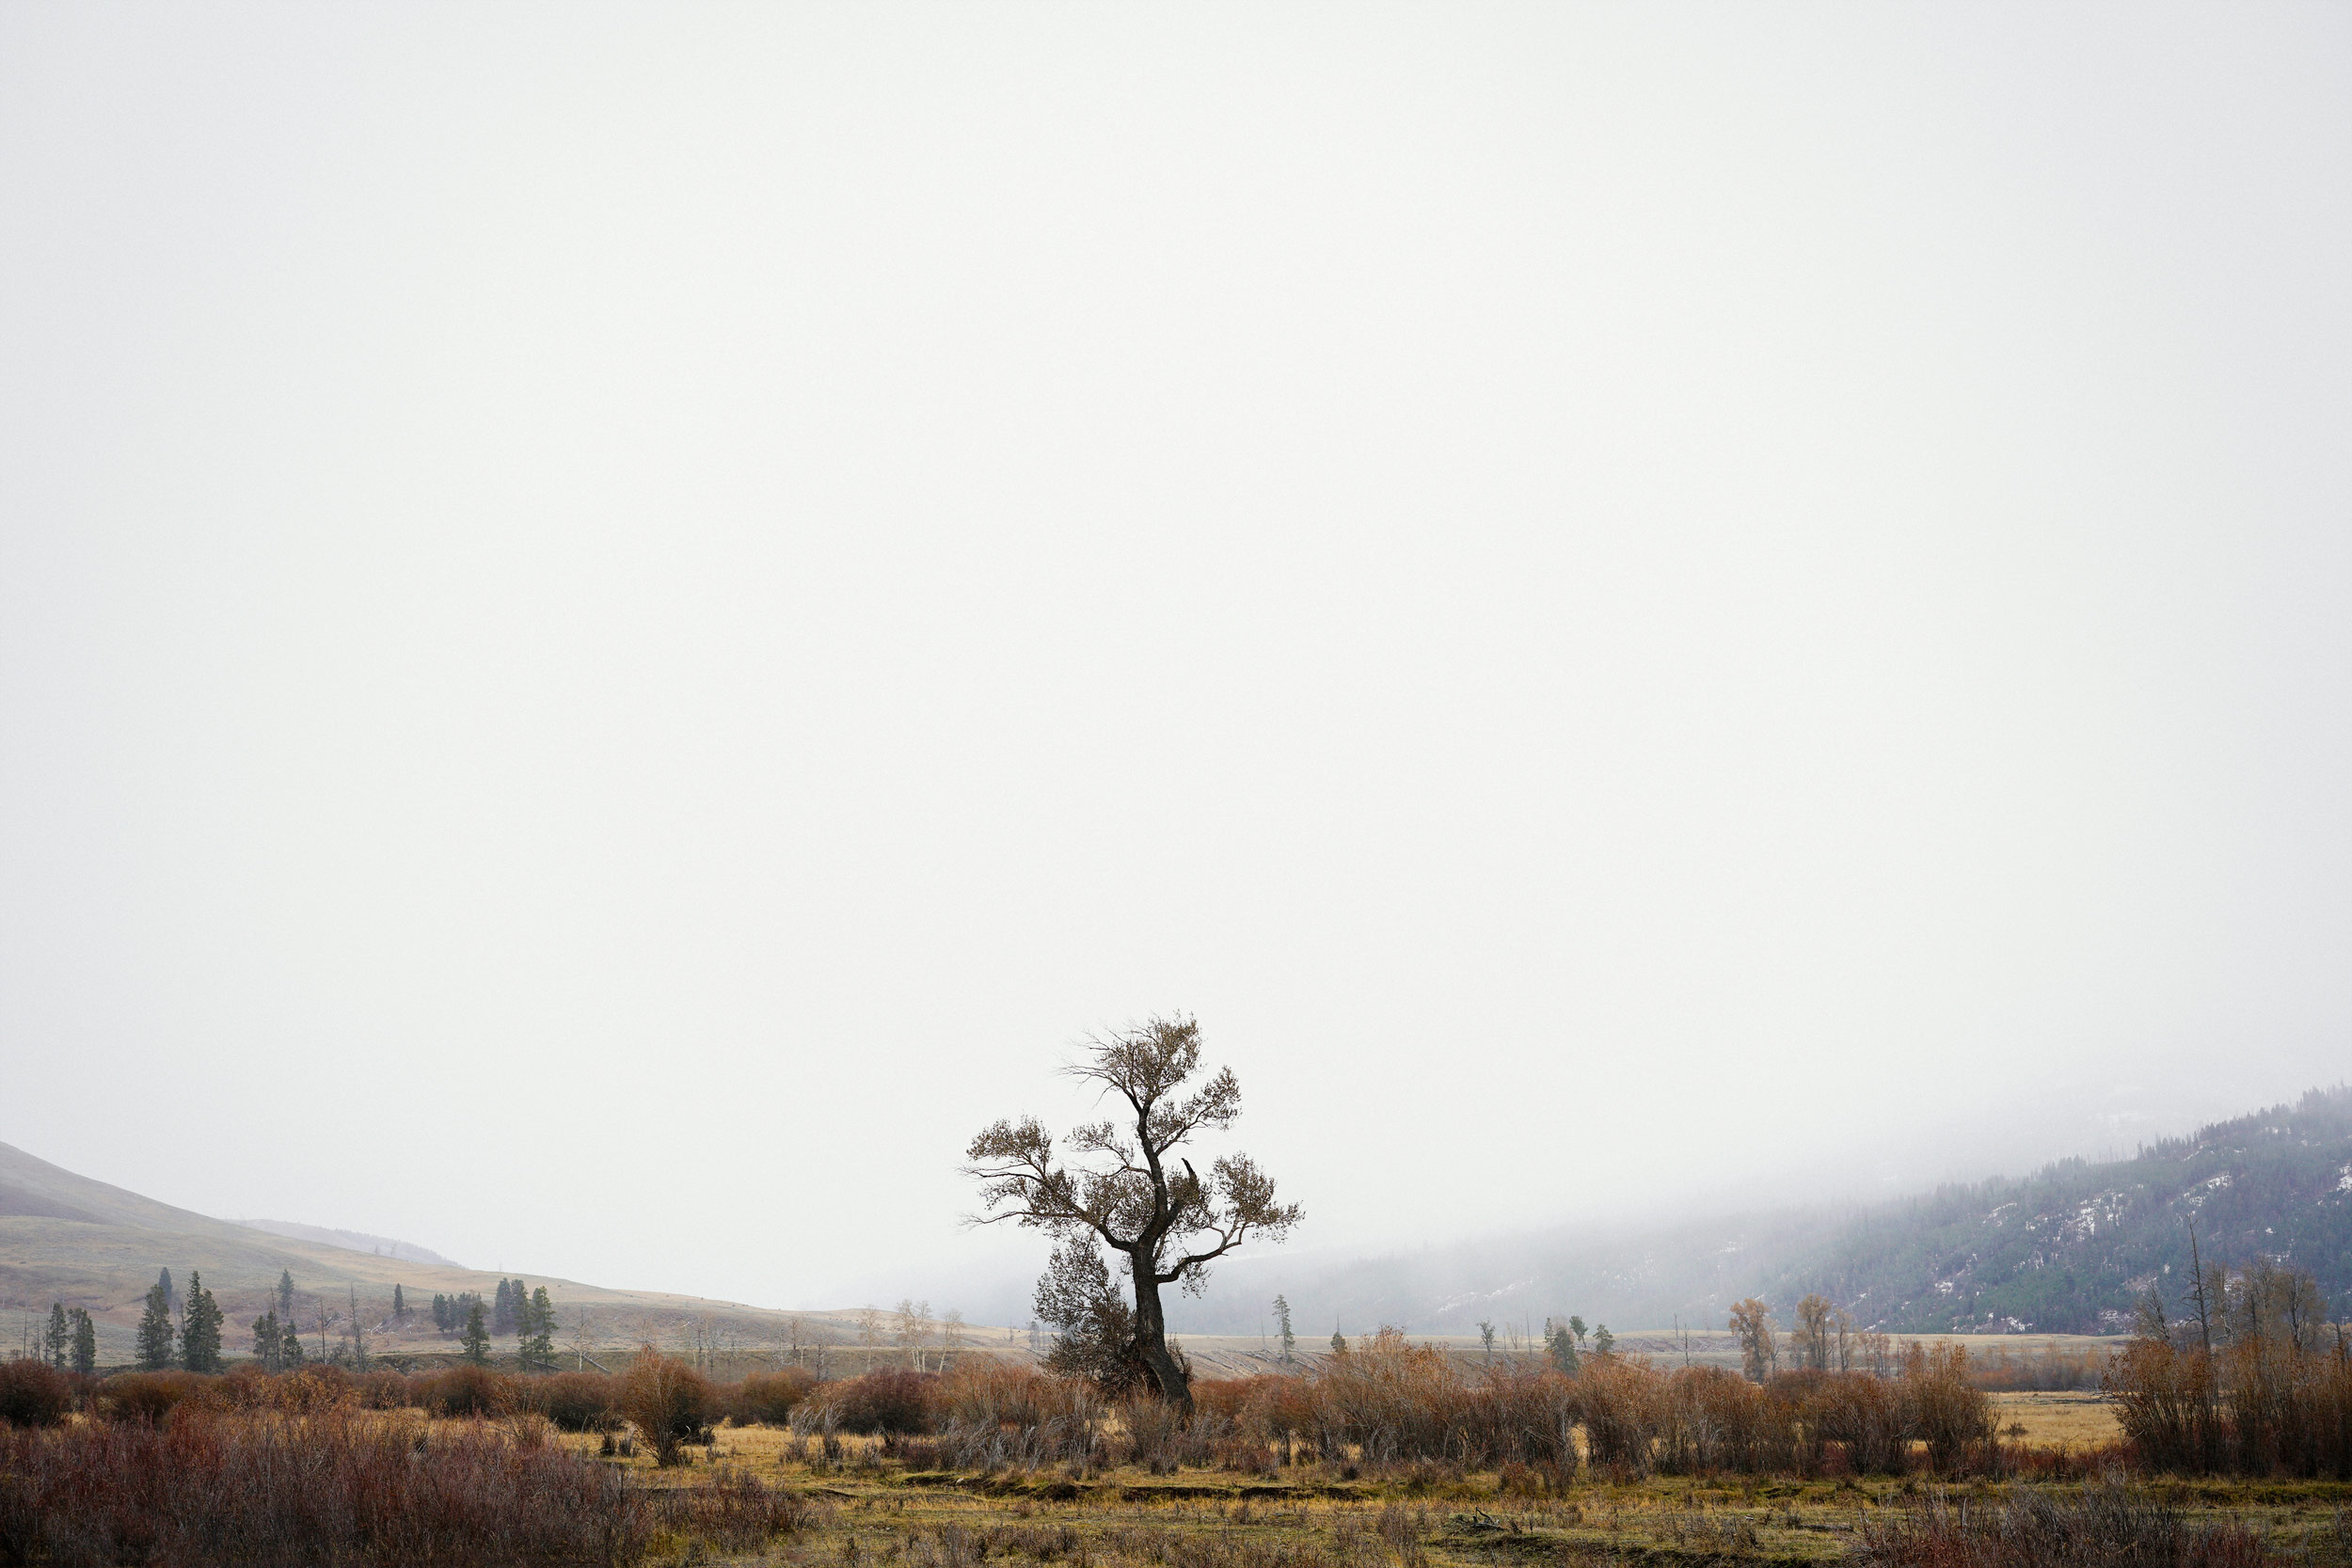 Lone Tree in the Lamar Valley